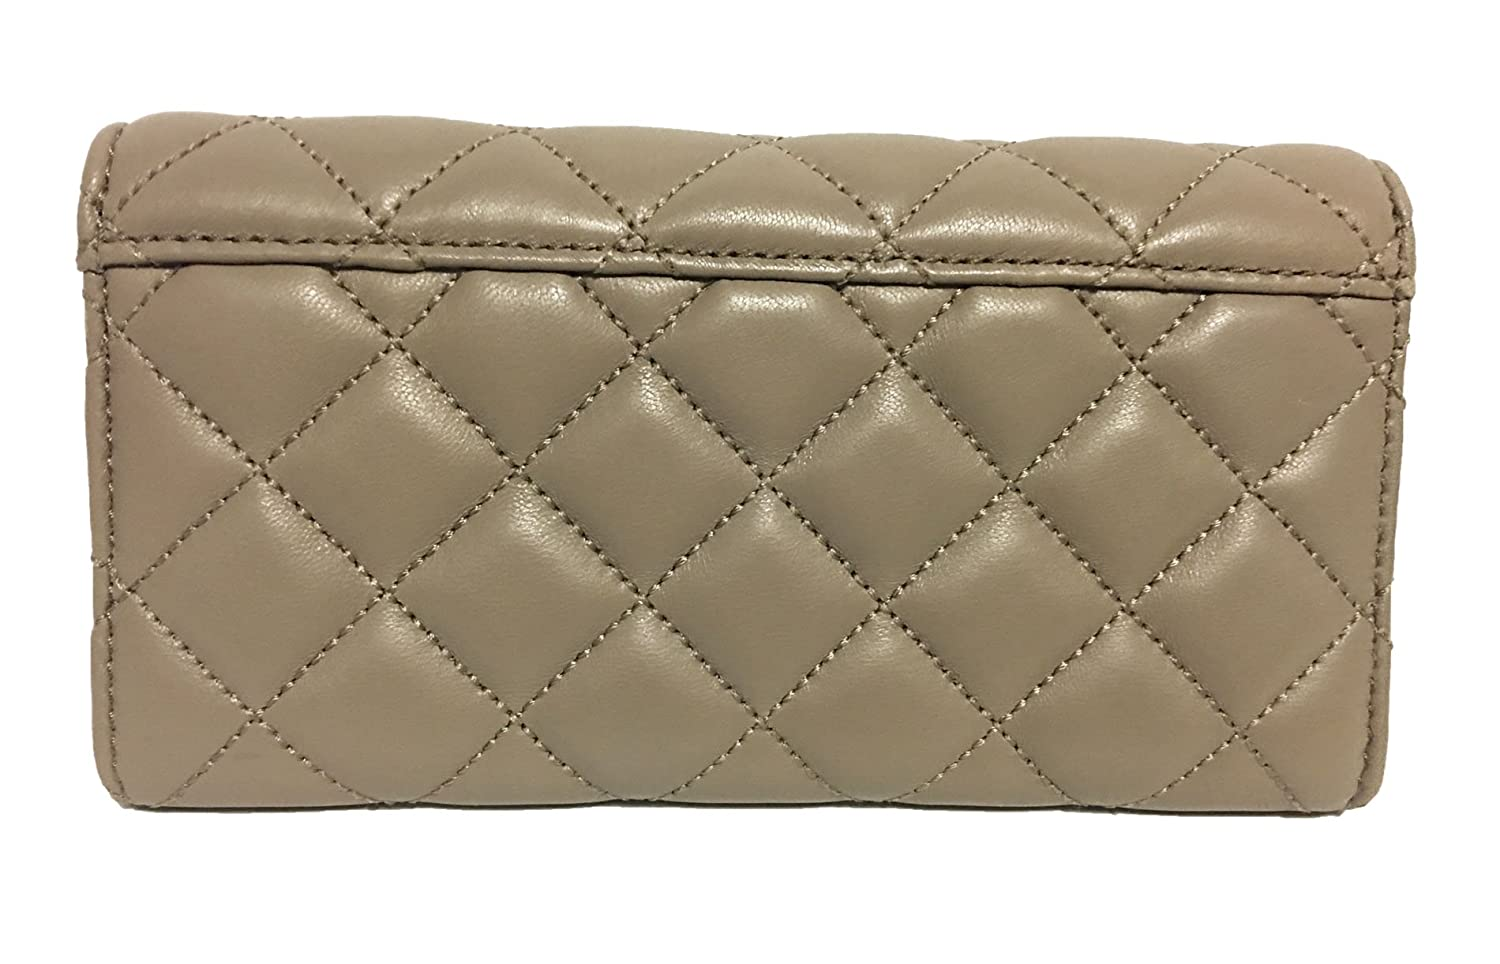 27016926c5c5 Amazon.com: MICHAEL Michael Kors Astrid Soft Quilted Leather Carry All  Wallet Dark Taupe/Gold: Shoes